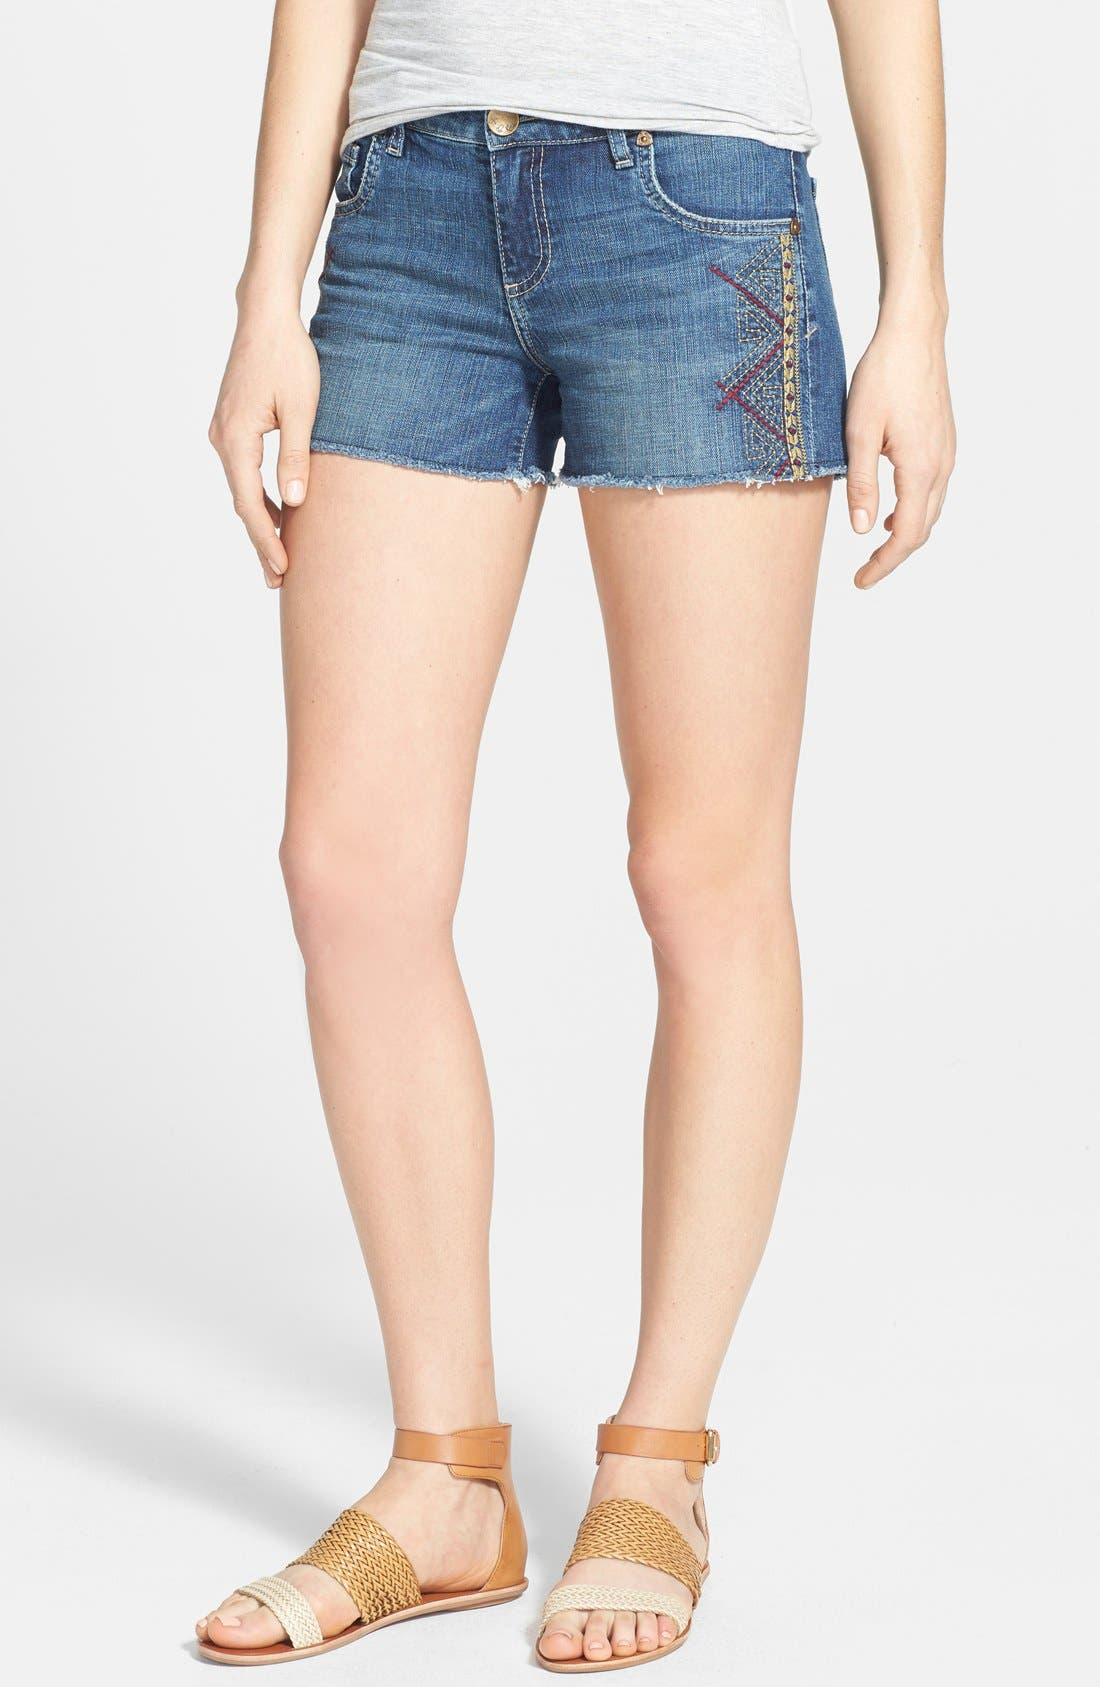 Alternate Image 1 Selected - KUT from the Kloth Embroidered Cutoff Denim Shorts